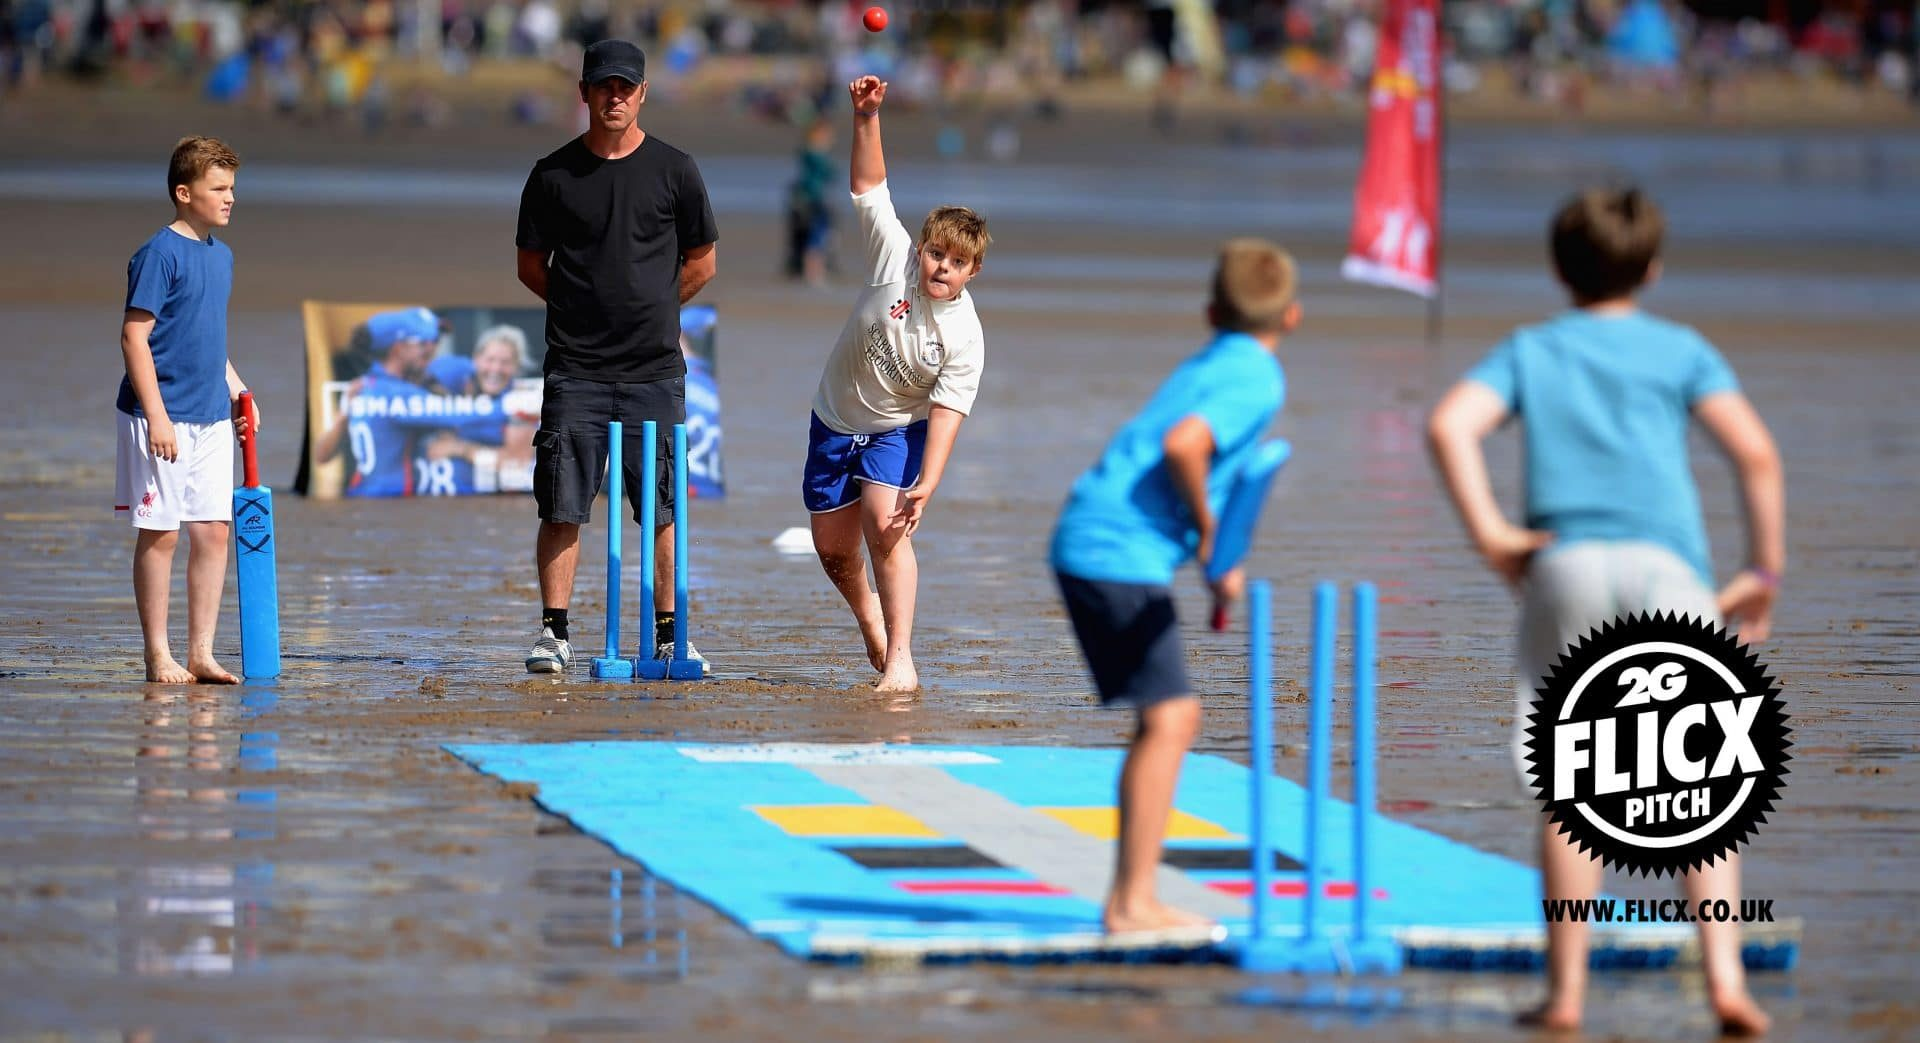 Yorkshire Cricket Foundation Beach Cricket